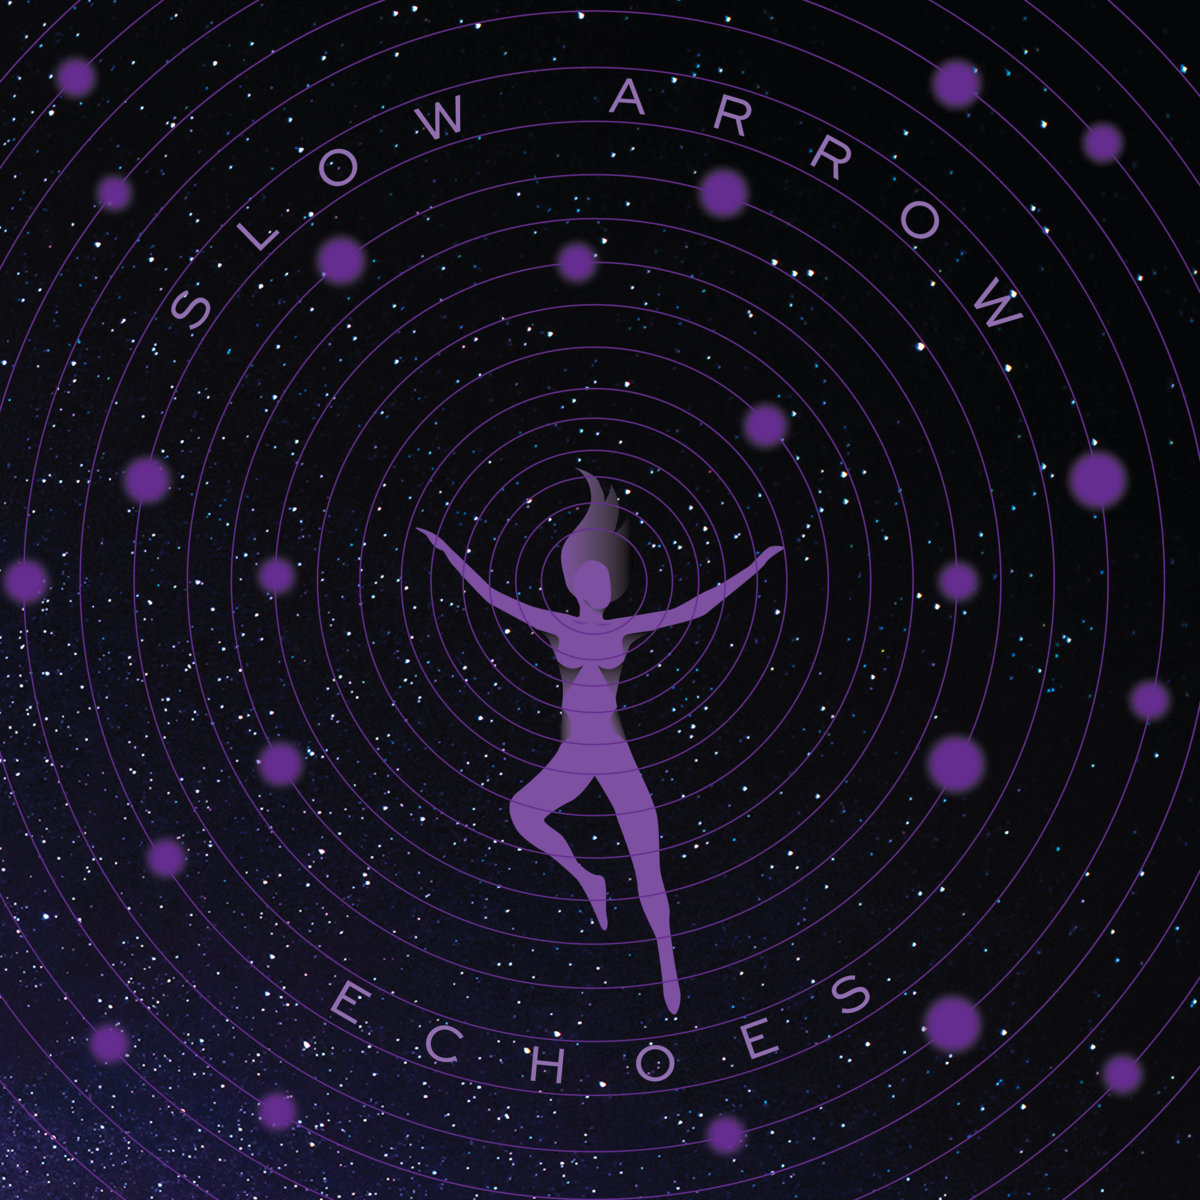 Echoes - Slow Arrow